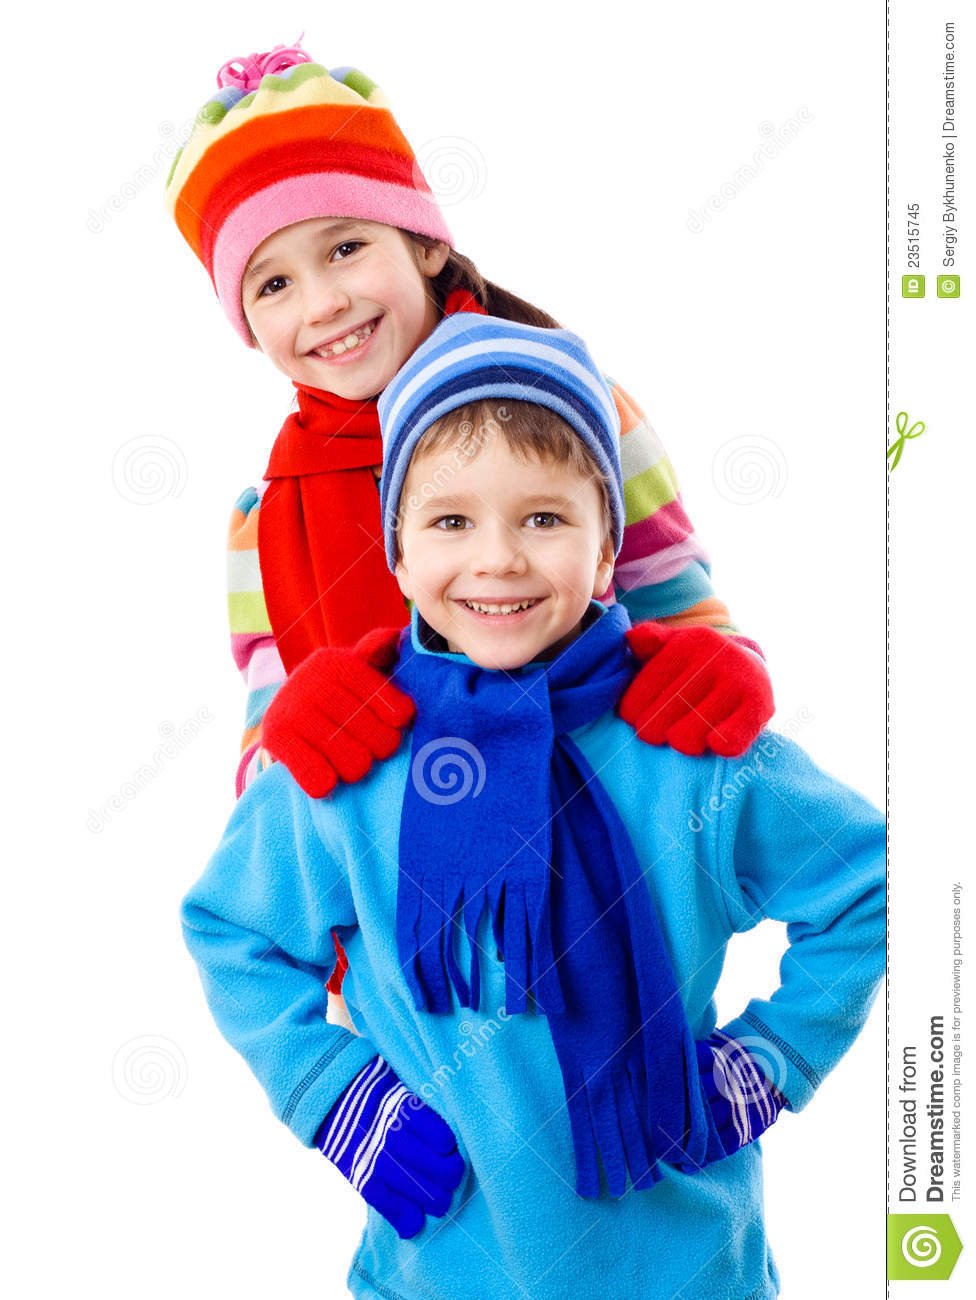 kids winter clothing - Kids Clothes Zone